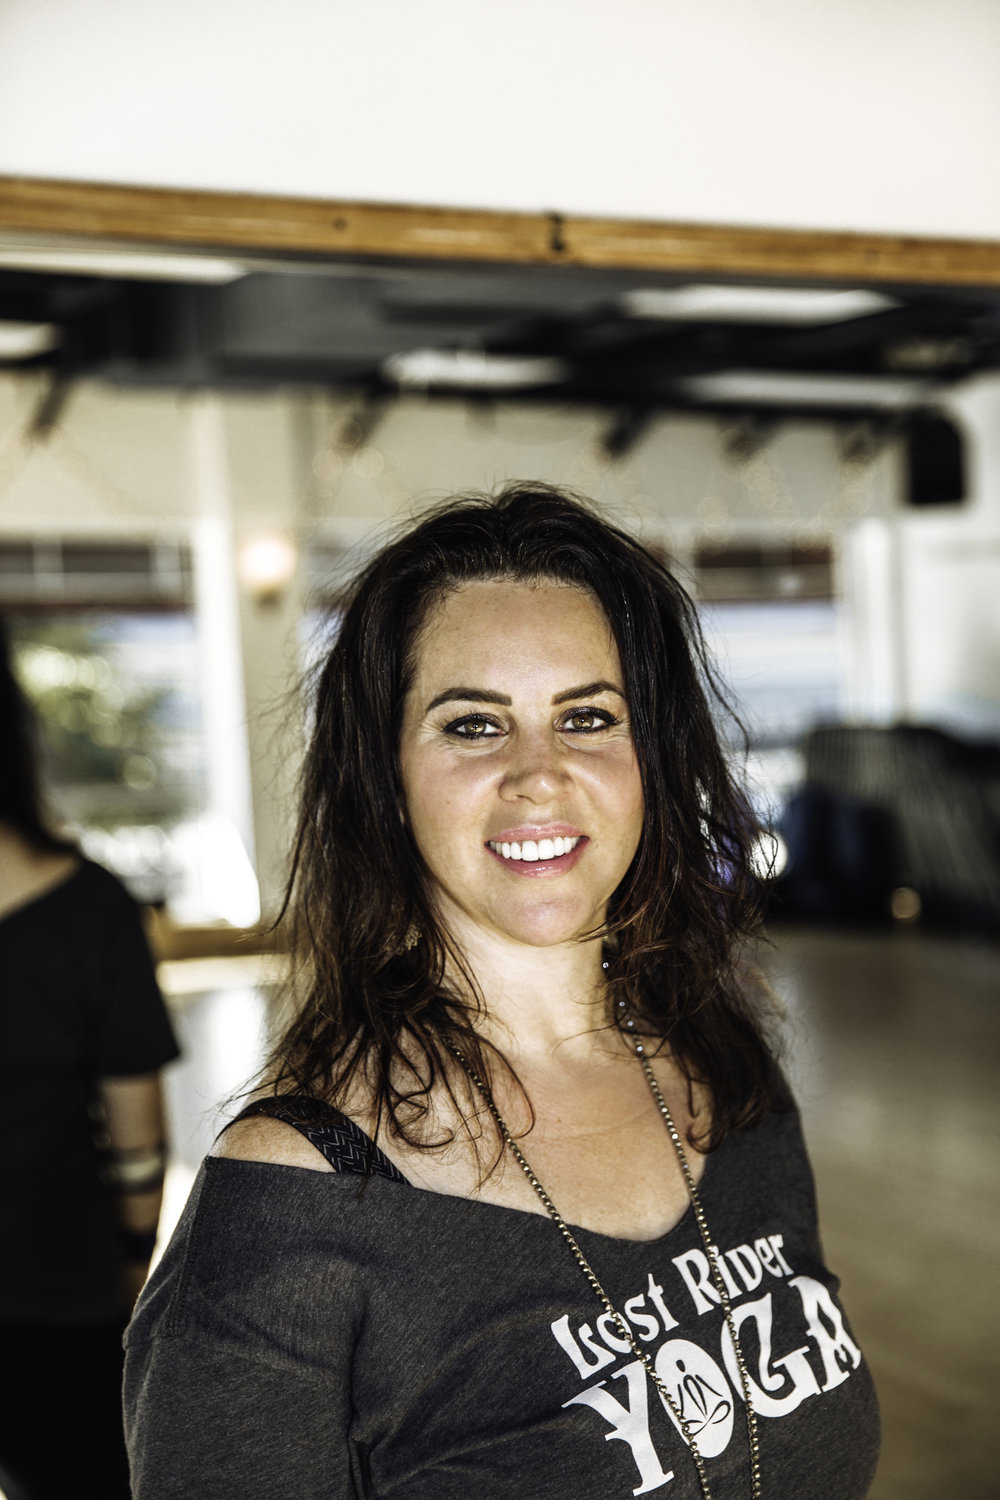 aSHIRA lAVINE, m.a.   RYT-200, Mindfulness Instructor   After 20 years studying human behavior and body language as a criminologist, Ashira has deepened her study into the human body as a registered yoga teacher, meditation teacher and licensed massage therapist. Ashira teaches a relaxing and revitalizing style of yoga. This is accomplished through slow, gentle, mindful movement that is integrated with breath work and meditation to relax your body and mind while healing your entire system, reducing pain, improving sleep quality and cultivating happiness.